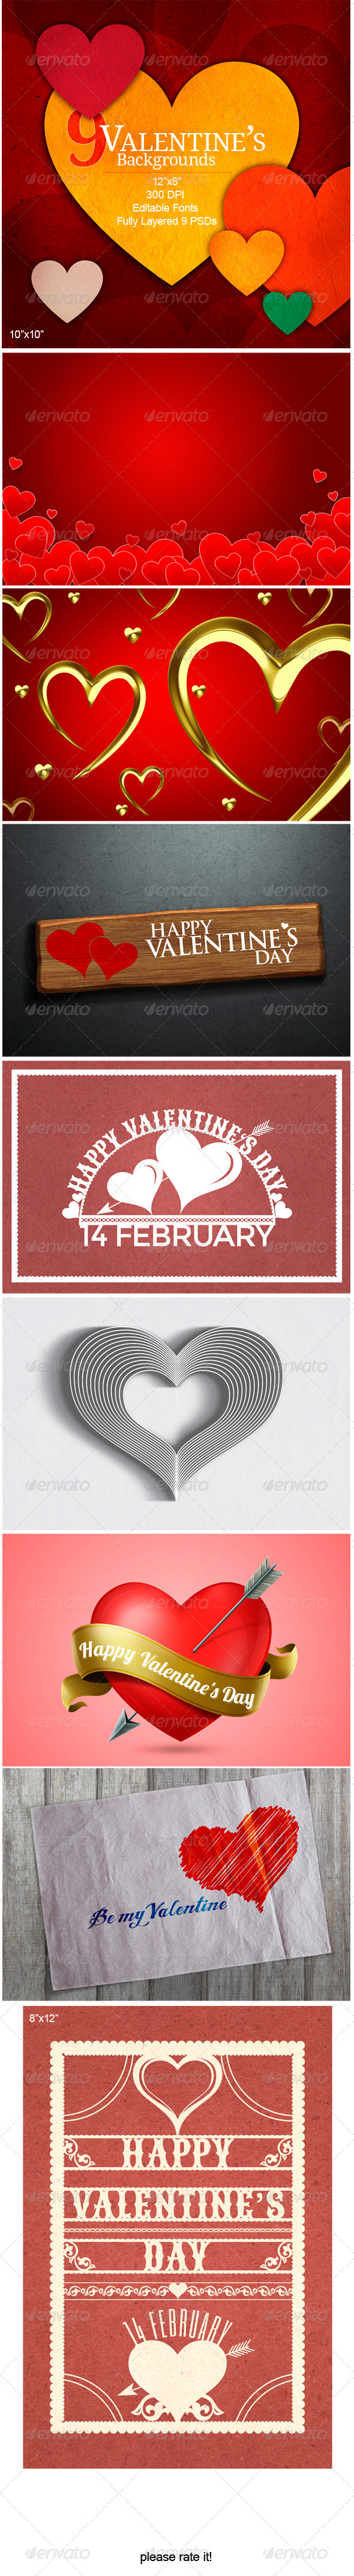 9 Valentine's Backgrounds - Backgrounds Graphics